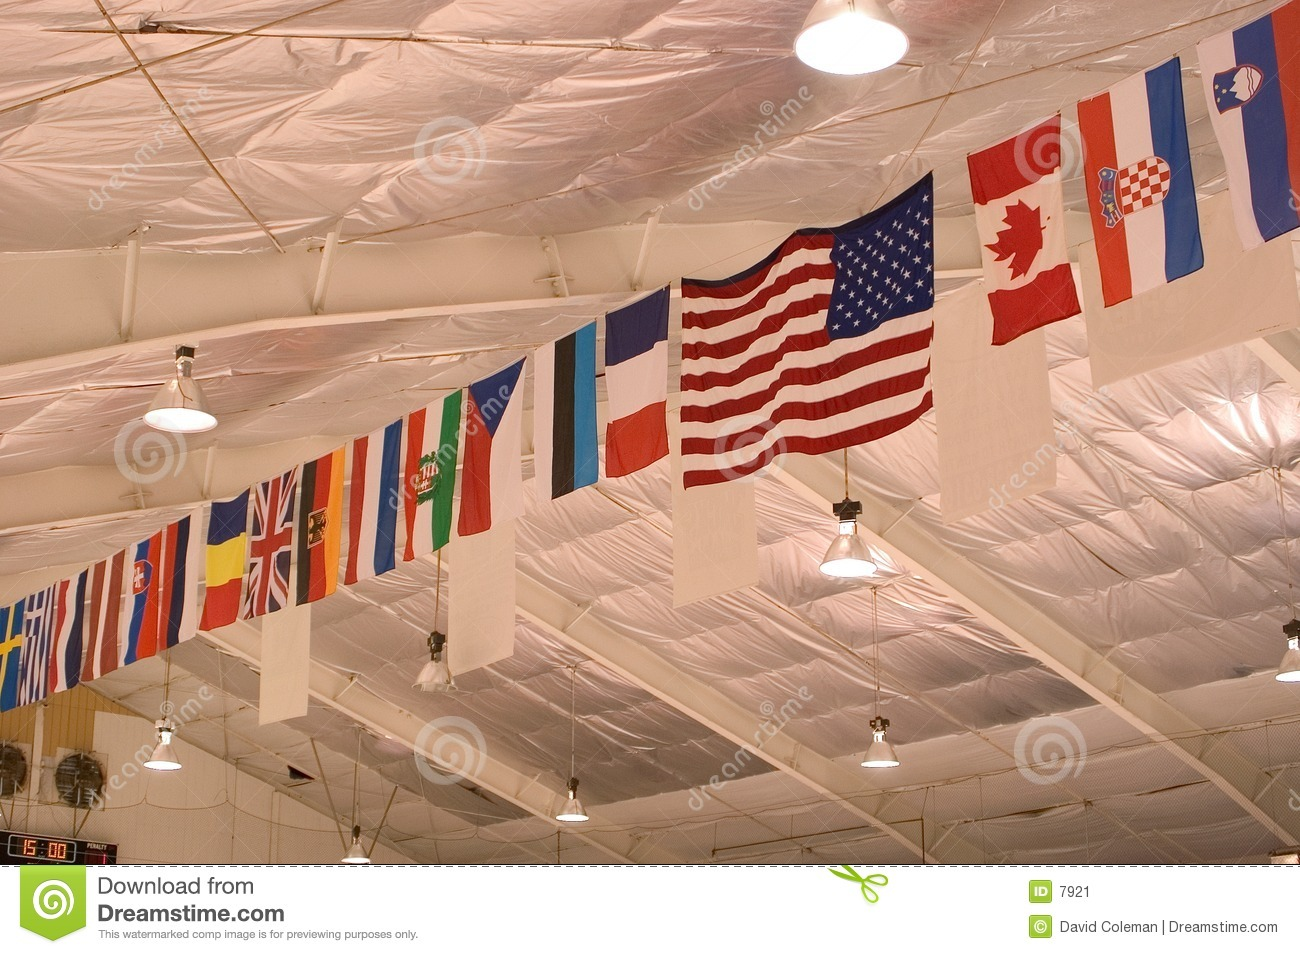 Flags on the Ceiling